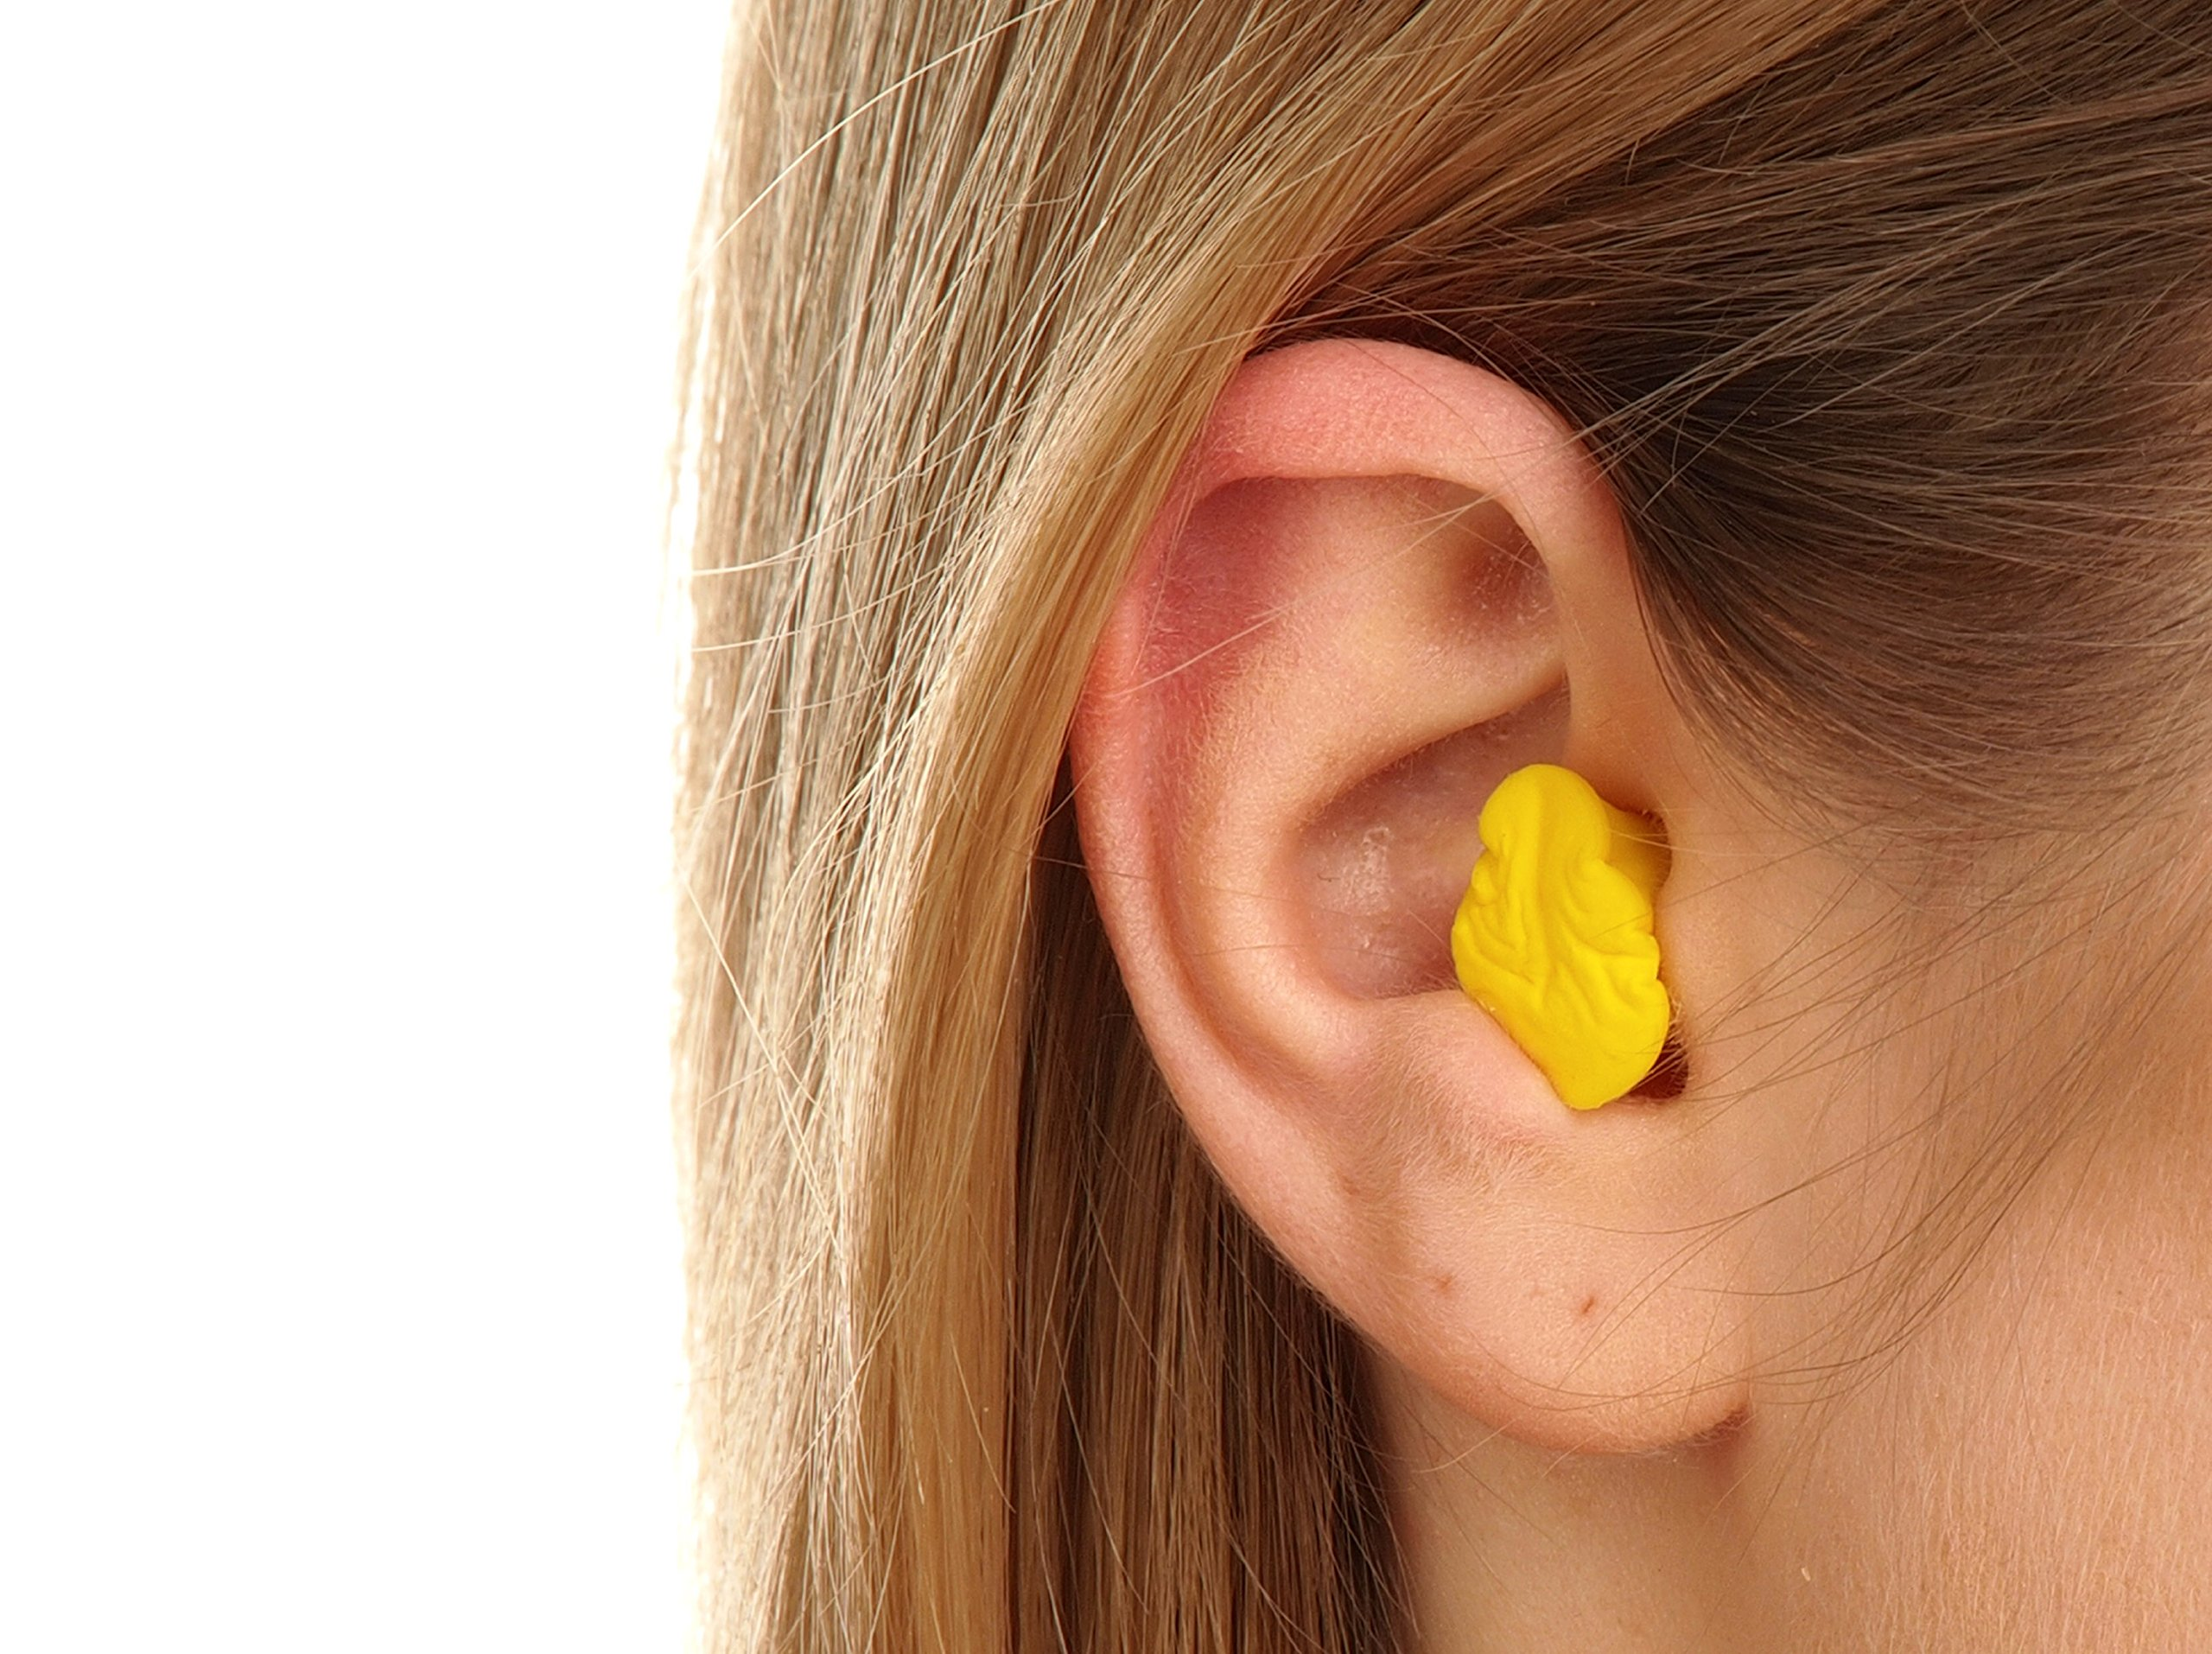 PQ Earplugs for Sleep - Comfortable & Reusable Ear Plugs for Side Sleepers - Sound Blocking Level 32 dB - Noise Cancelling for Snoring & Reusable Ear Plugs for Swimming & Traveling by Peace&Quiet (Image #5)